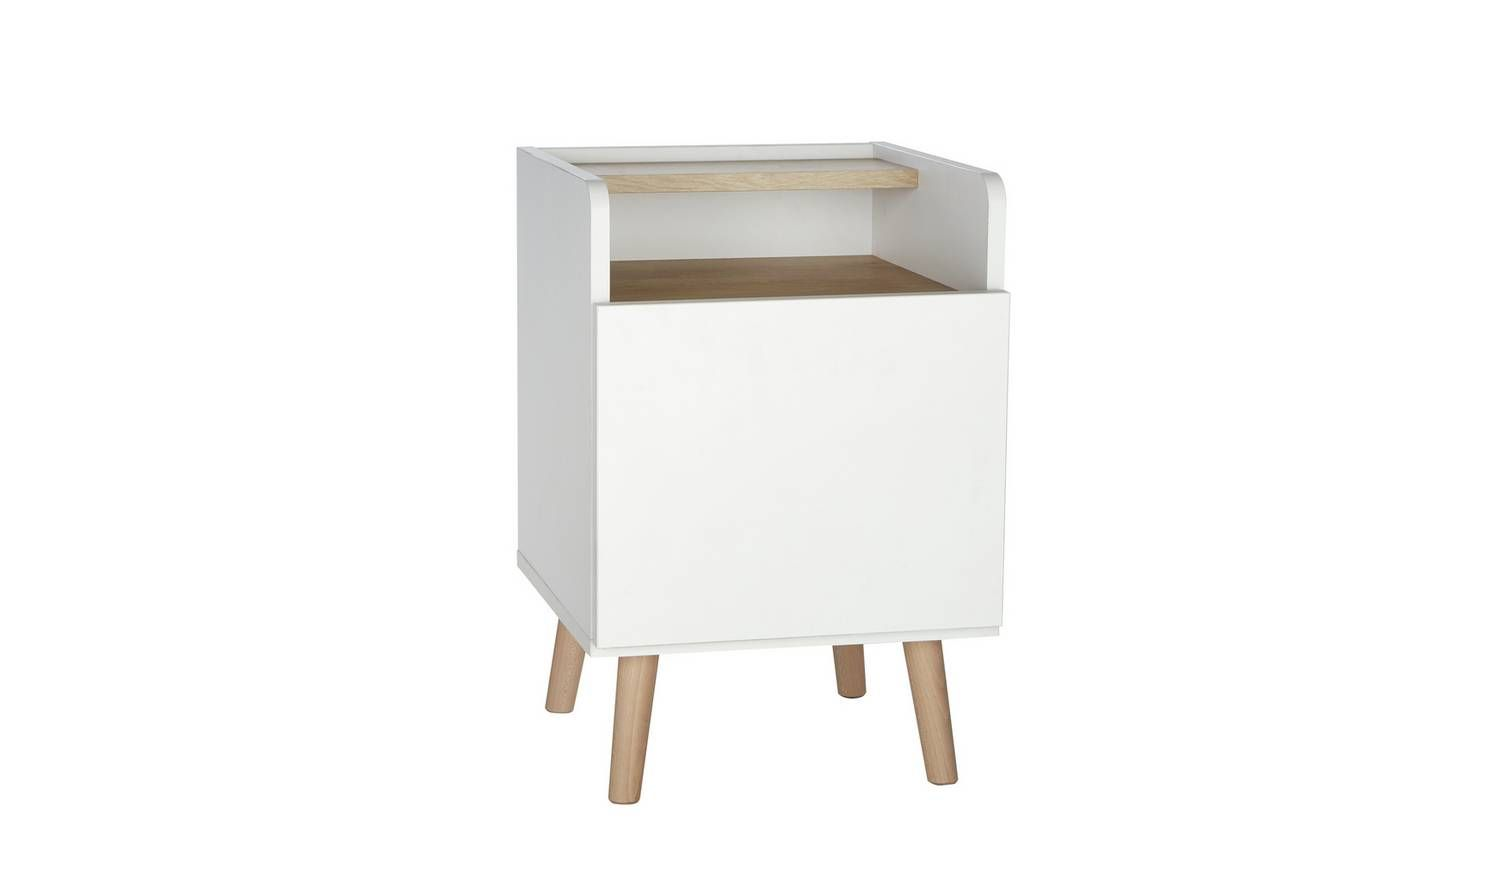 Buy Argos Home Skandi 1 Drawer Bedside Table White Two Tone Bedside Tables Argos In 2020 White Bedside Table Argos Home Furniture Packages